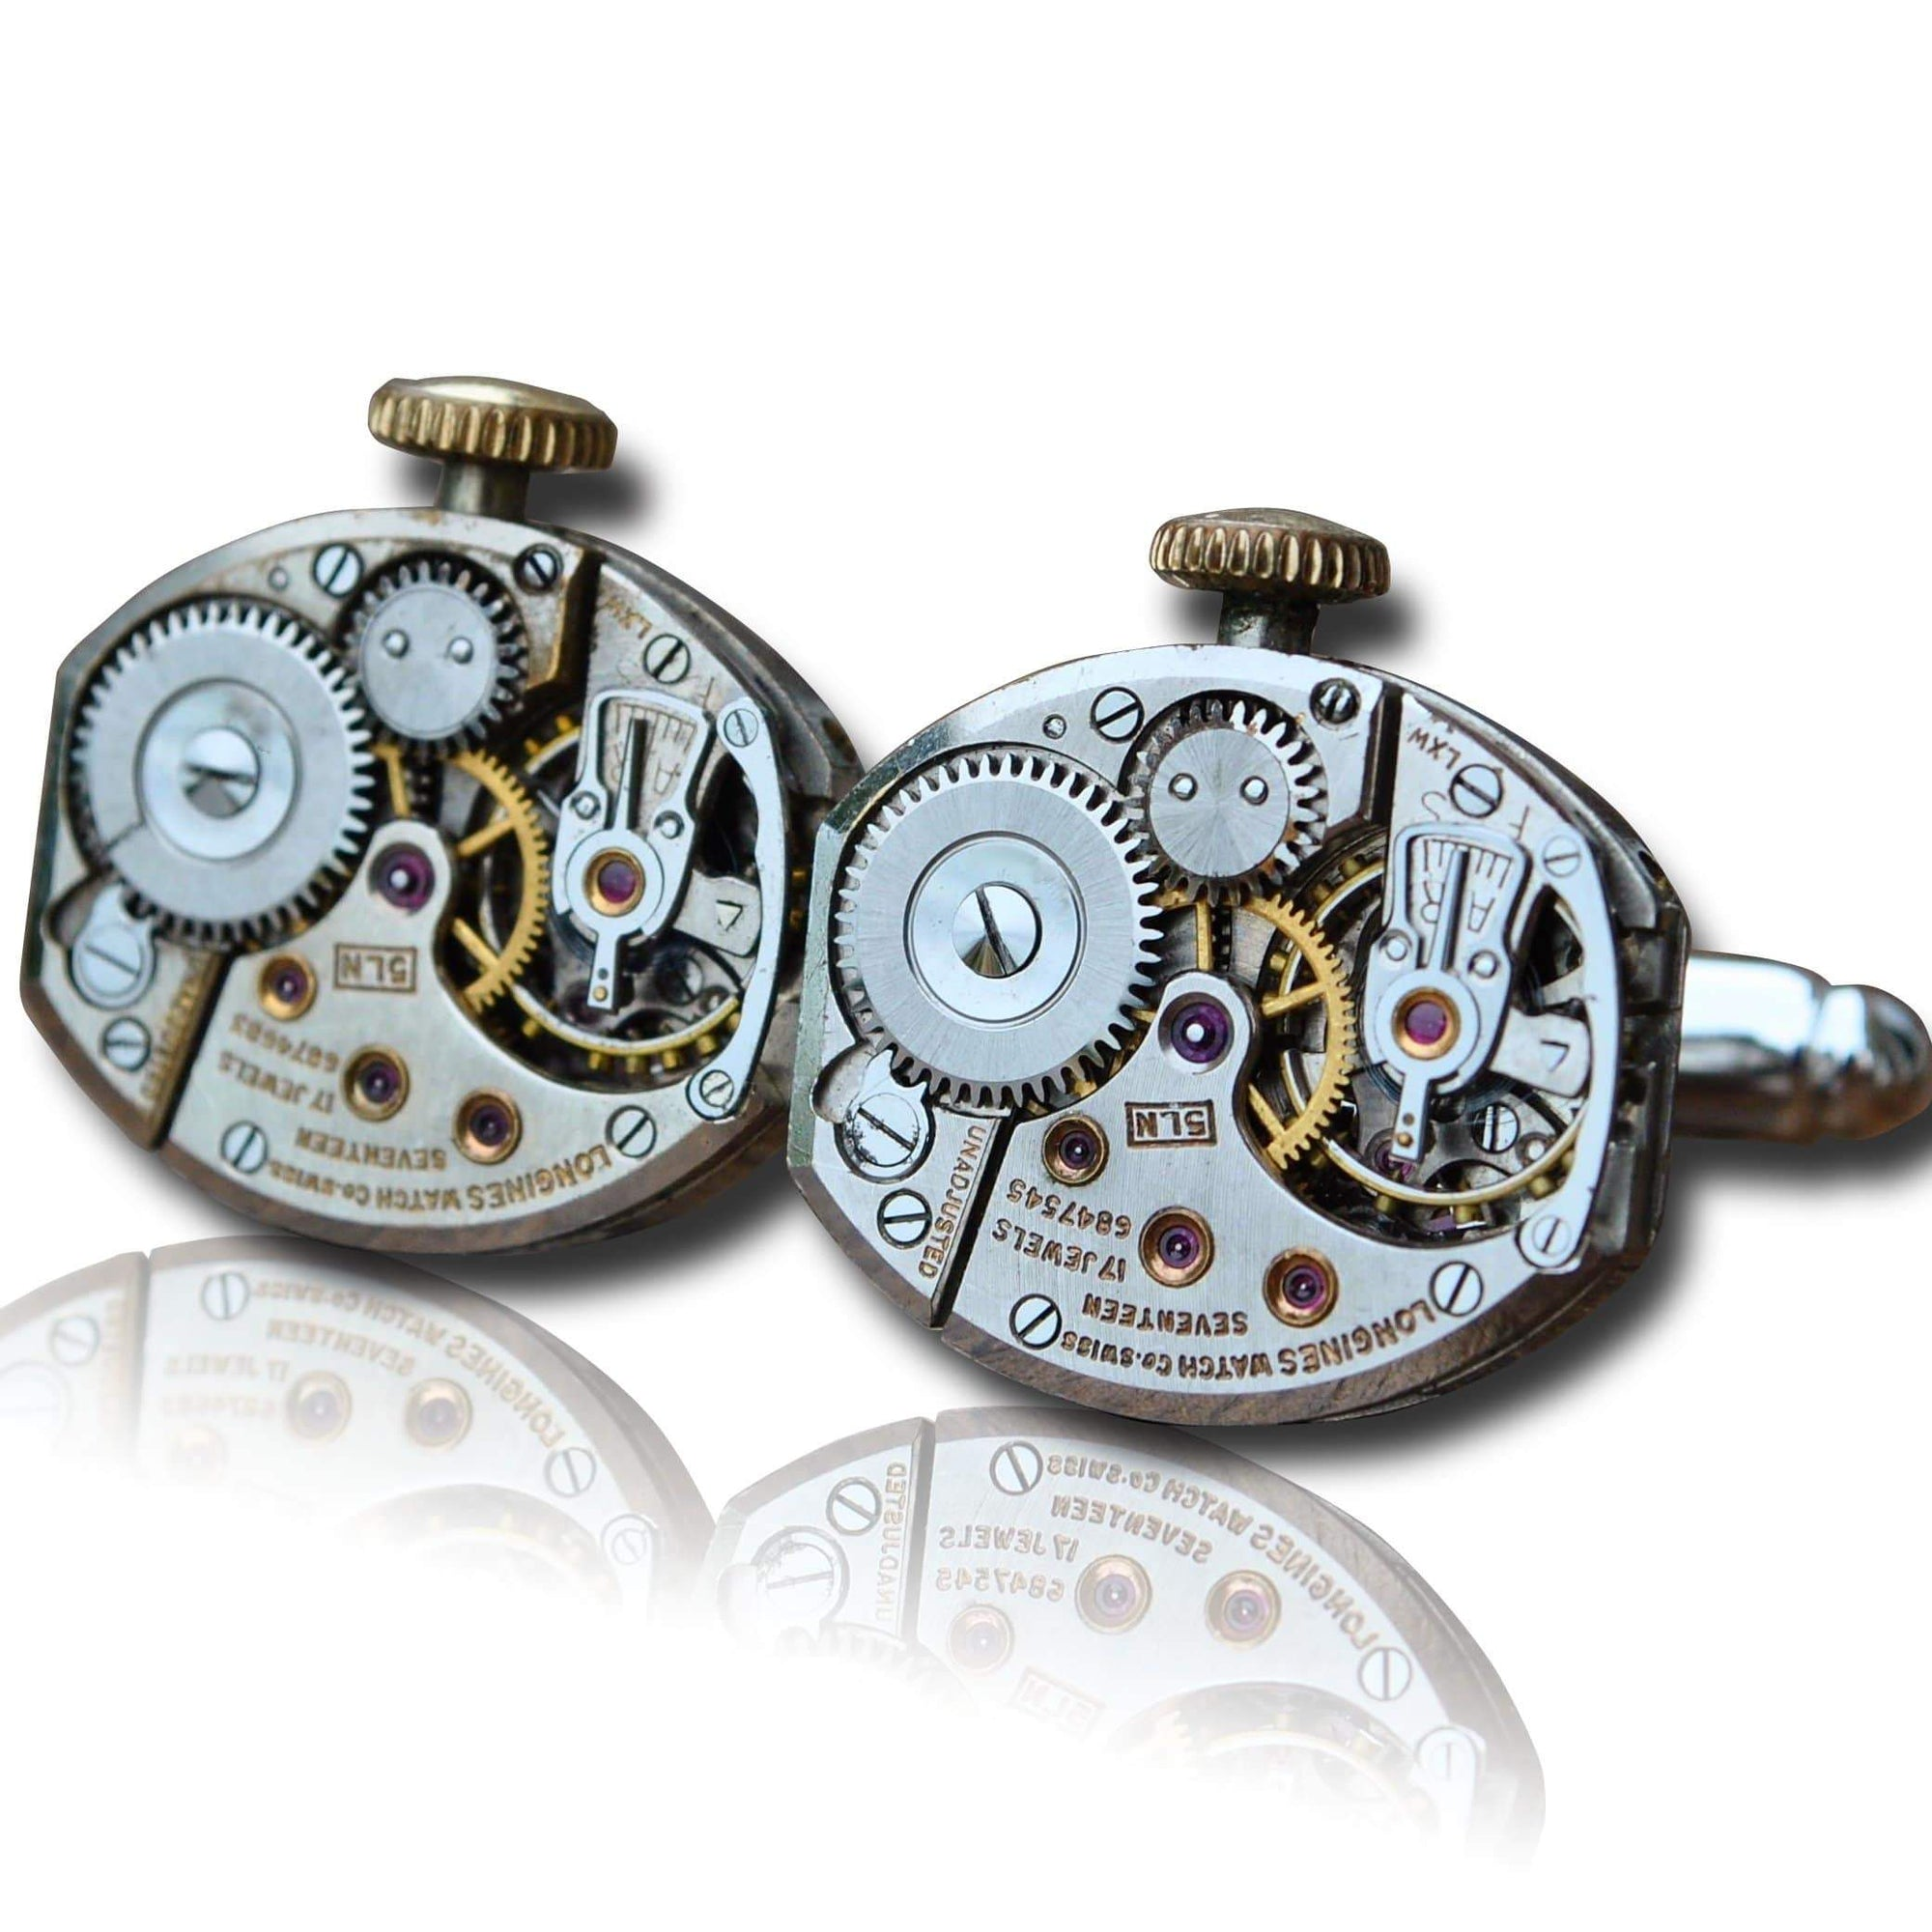 Men's Cufflinks | Lingo Luxe The Weathers-Lingo Luxe Bespoke